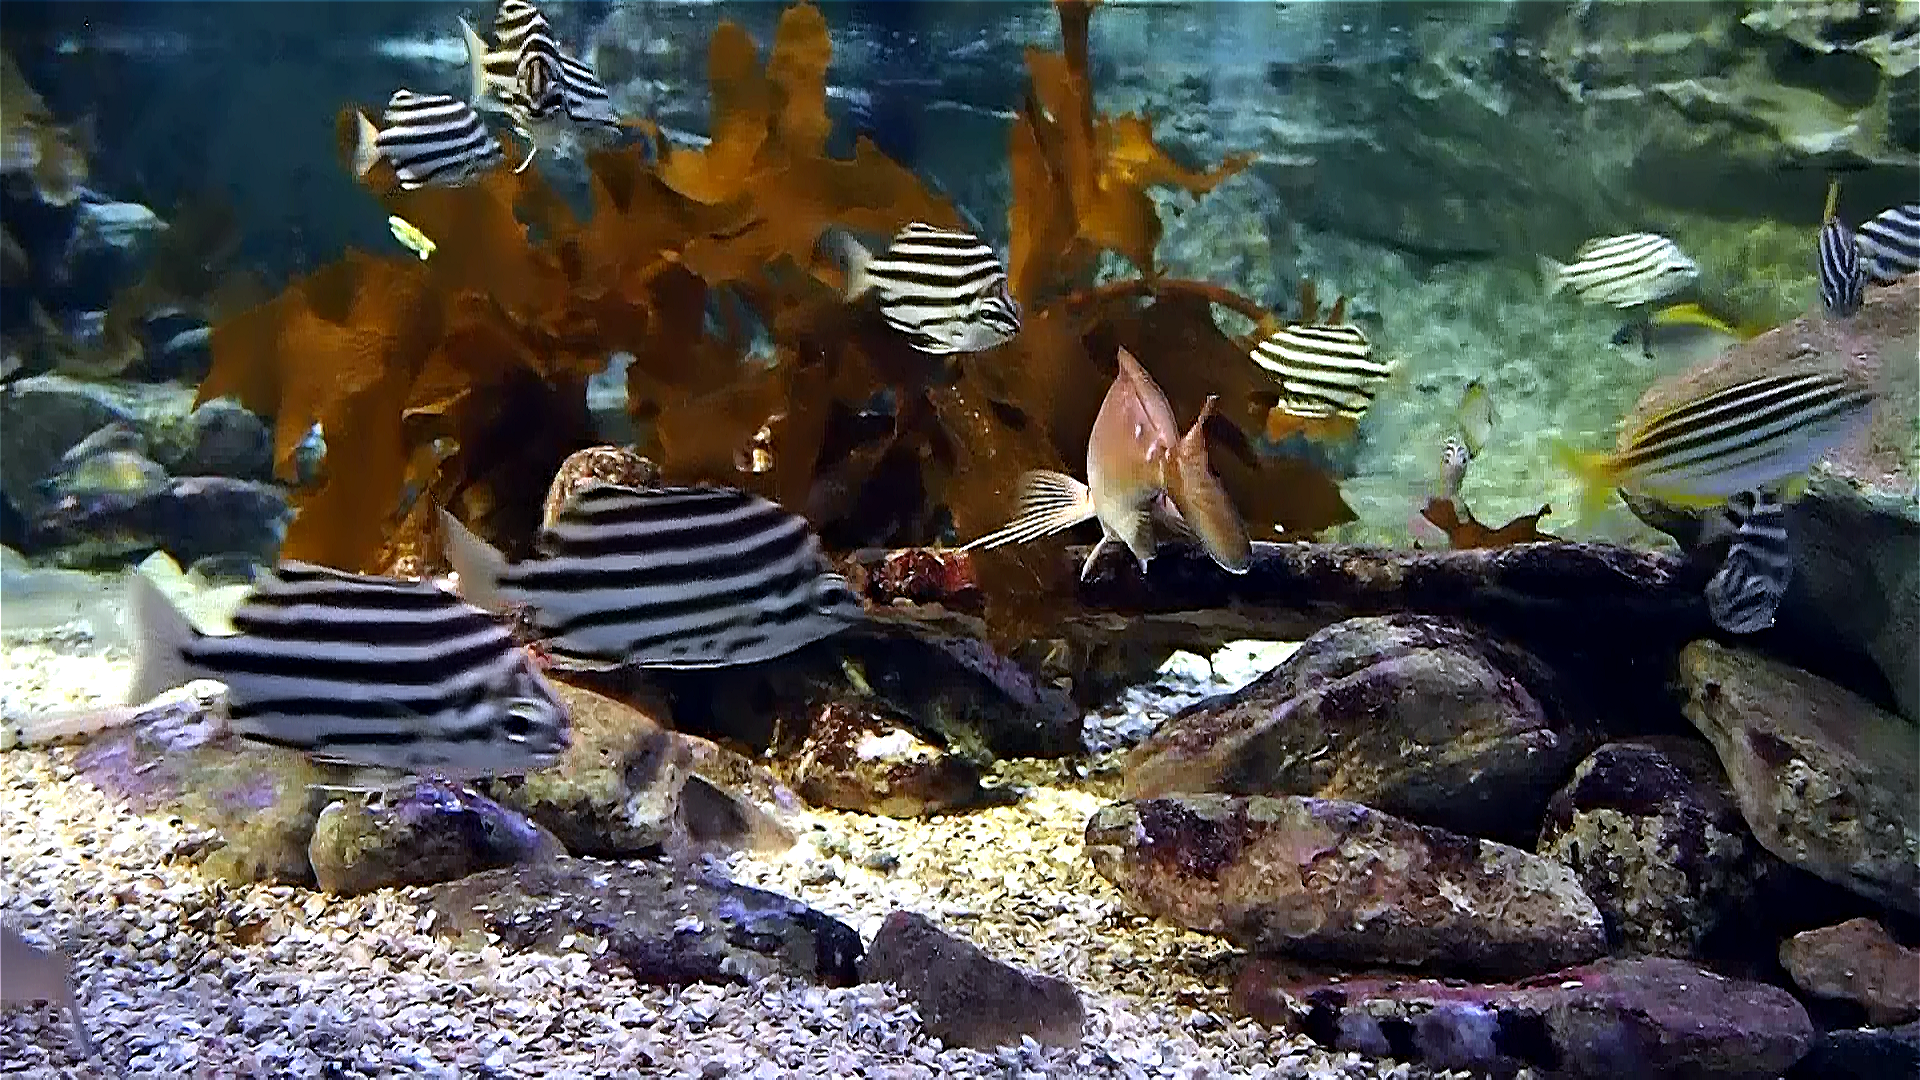 Aquarium live HD TV: Coral reef scenes with relaxing nature & ocean sounds for stress relief screenshot 4